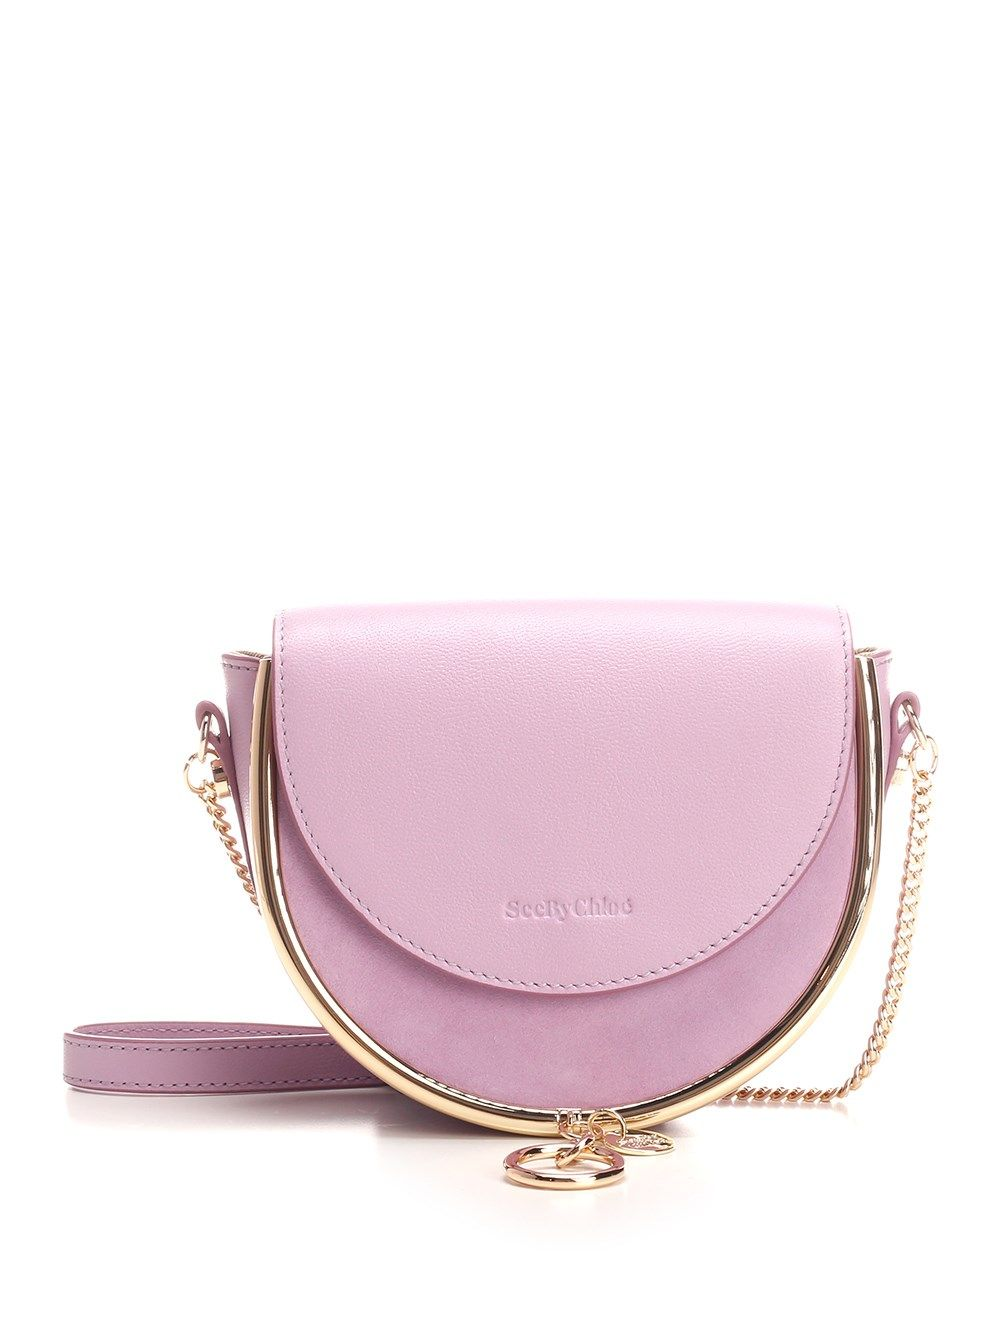 See By Chloé SEE BY CHLO WOMEN'S CHS20ASA57820599 PURPLE OTHER MATERIALS SHOULDER BAG